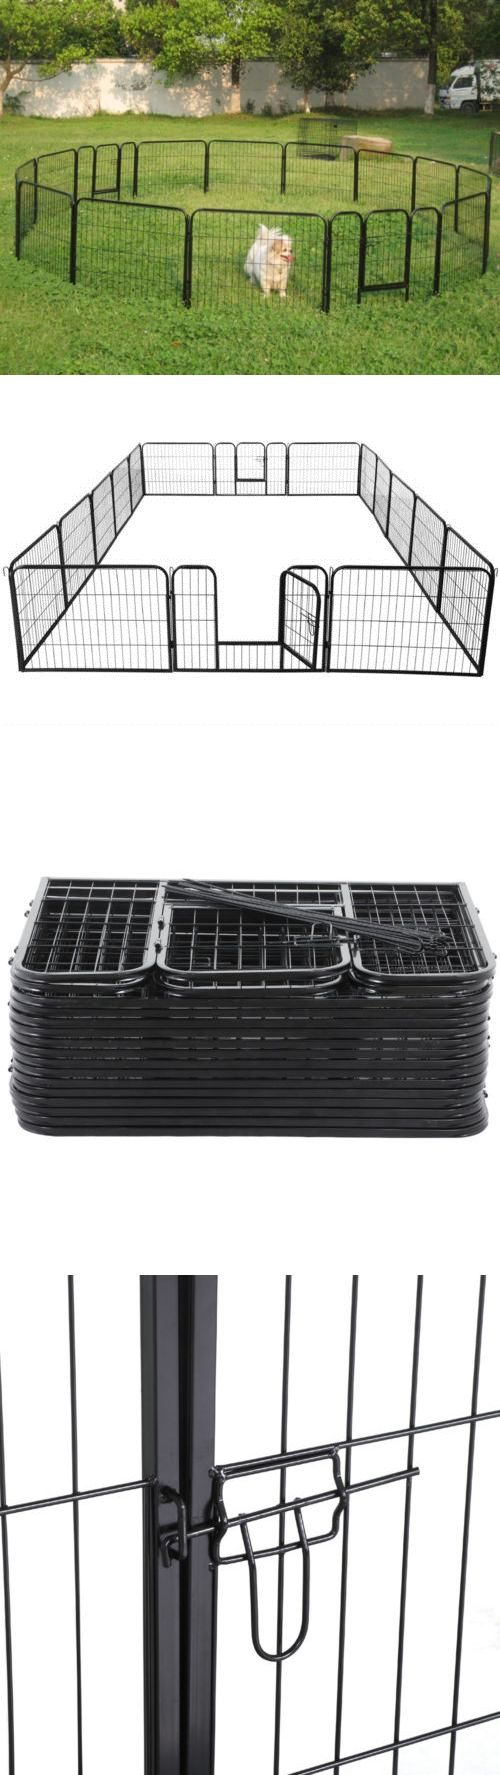 Fences and Exercise Pens 20748: Large 16 Panels Pet Dog Cat Metal Exercise Barrier Fence Playpen Kennel Yard New -> BUY IT NOW ONLY: $137.99 on eBay!